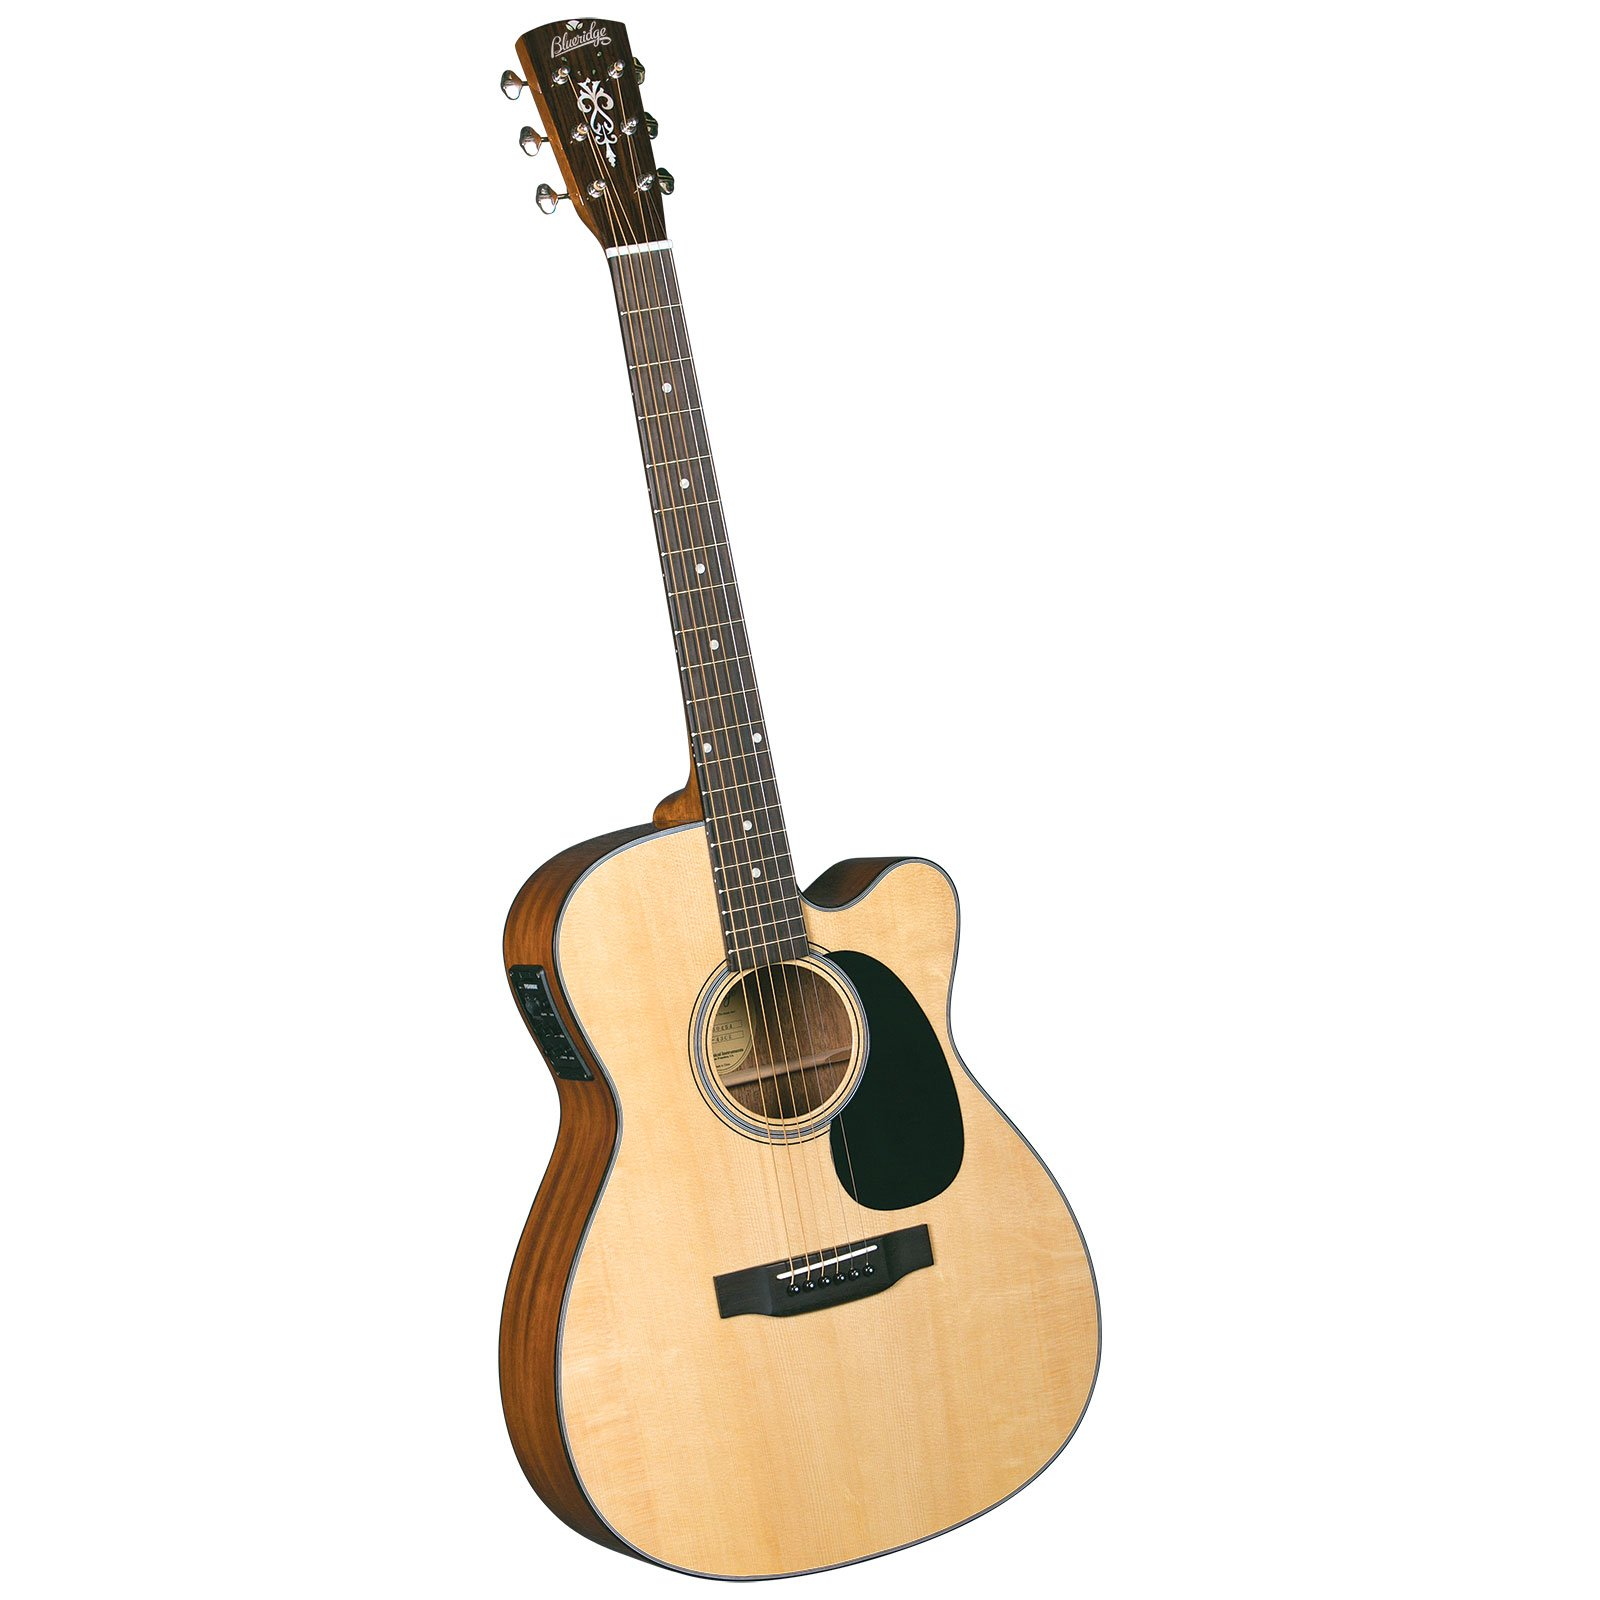 Cheap Blueridge BR-43CE Contemporary Series Cutaway Acoustic-Electric 000 Guitar Black Friday & Cyber Monday 2019